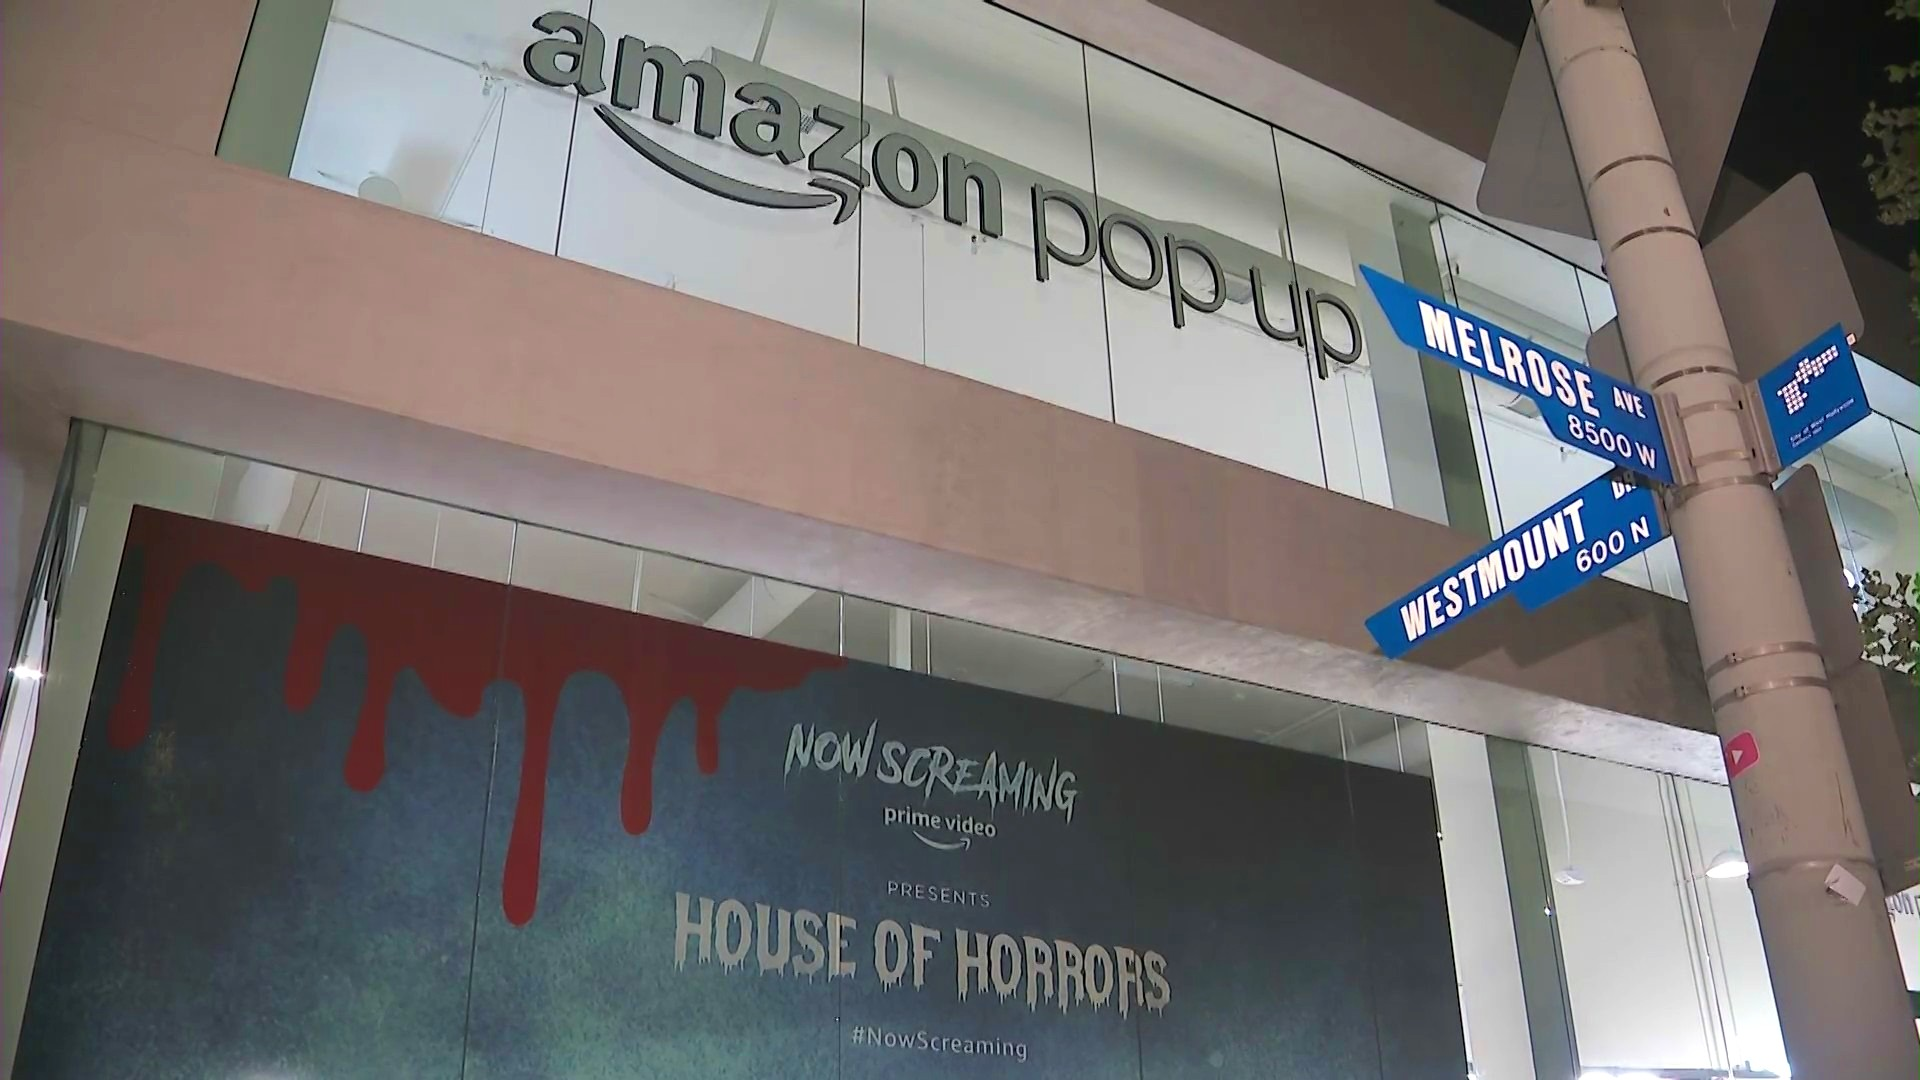 """Amazon's """"House of Horrors"""" pop-up shop is seen in West Hollywood on Sept. 28, 2021. (KTLA)"""